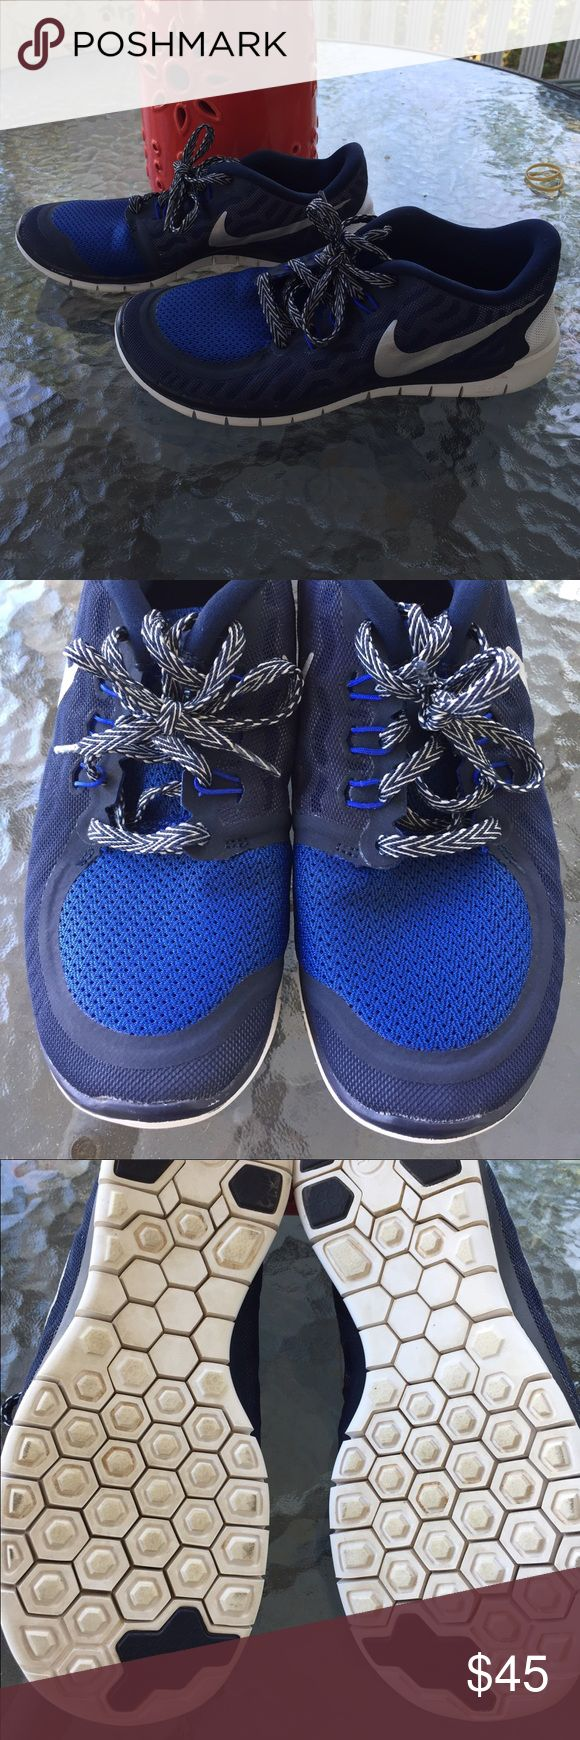 Nike free 5.0 Used but in great condition Nike Shoes Sneakers